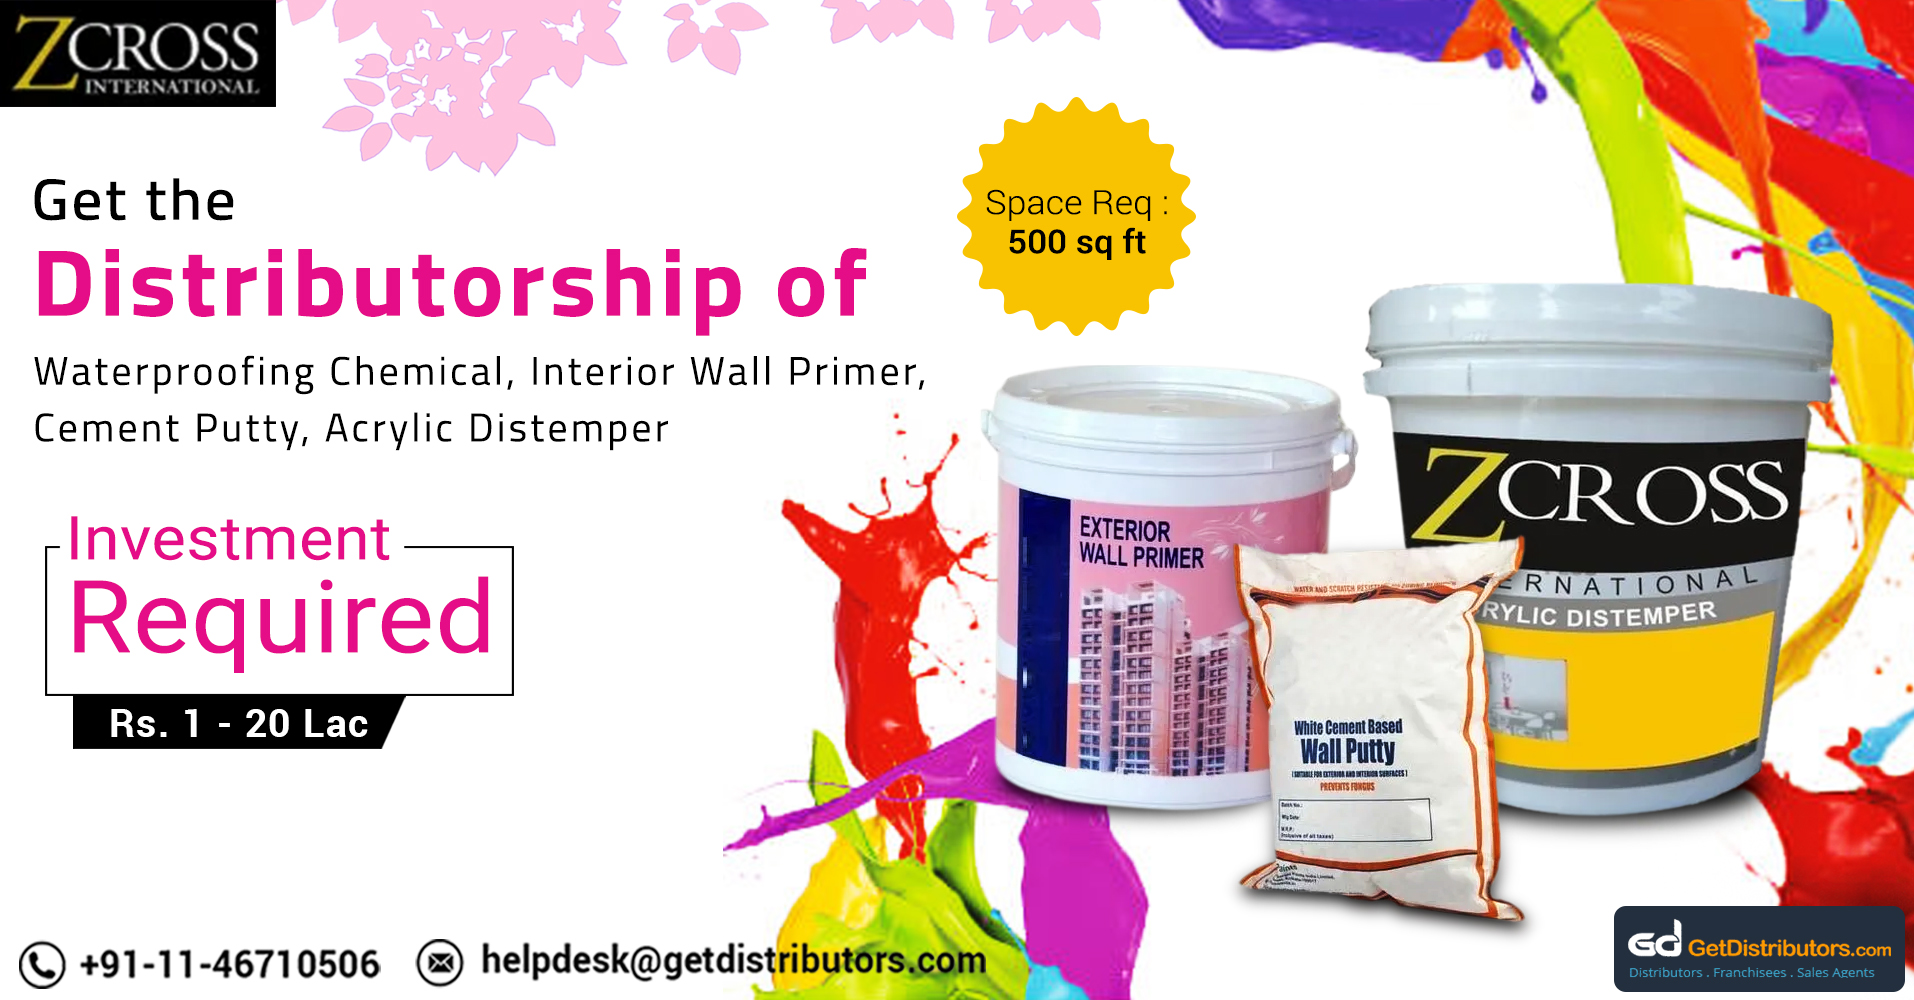 Get Distributorship Of Wall Primer, Waterproofing Chemicals And Allied Products At Pocket Friendly Prices